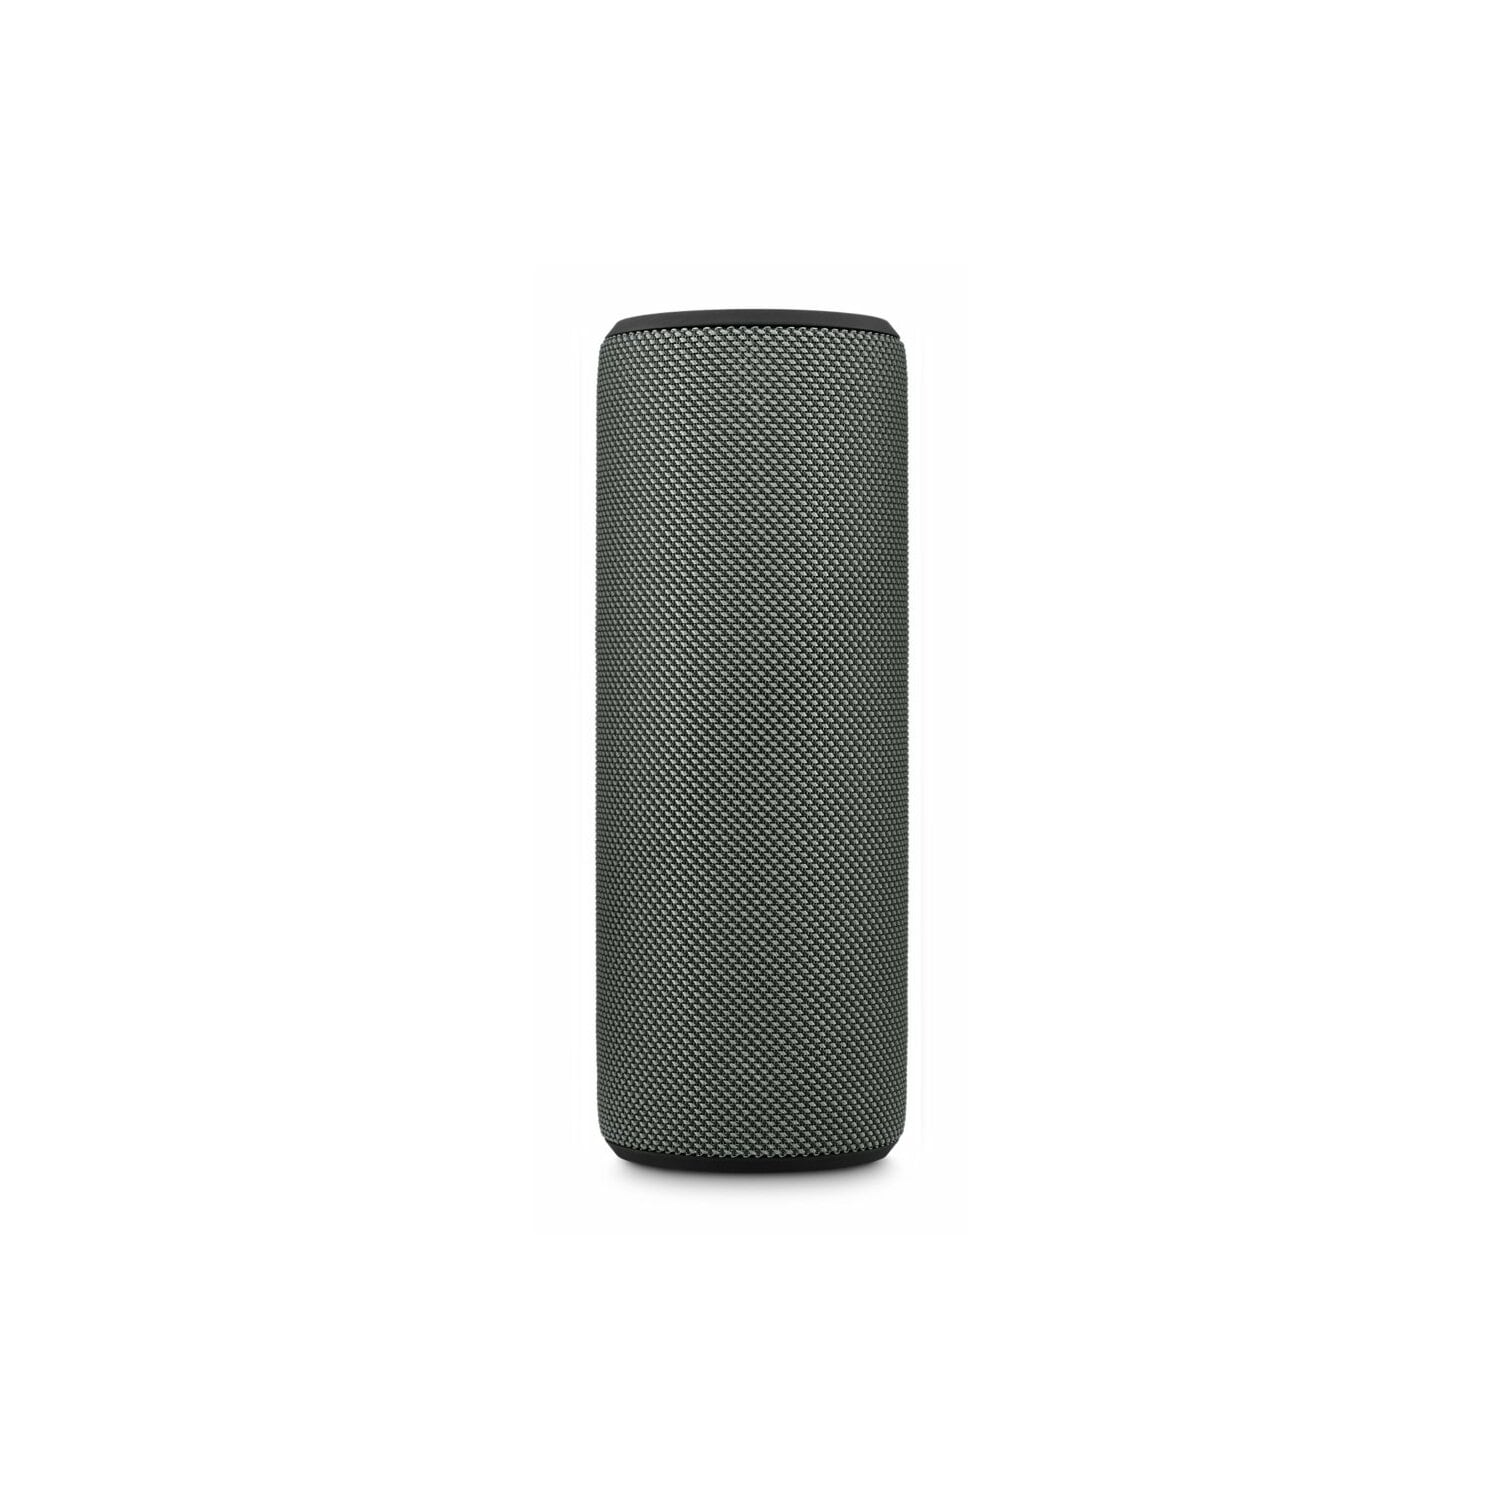 Głośnik Bluetooth ULTIMATE EARS Megaboom Charcoal Black